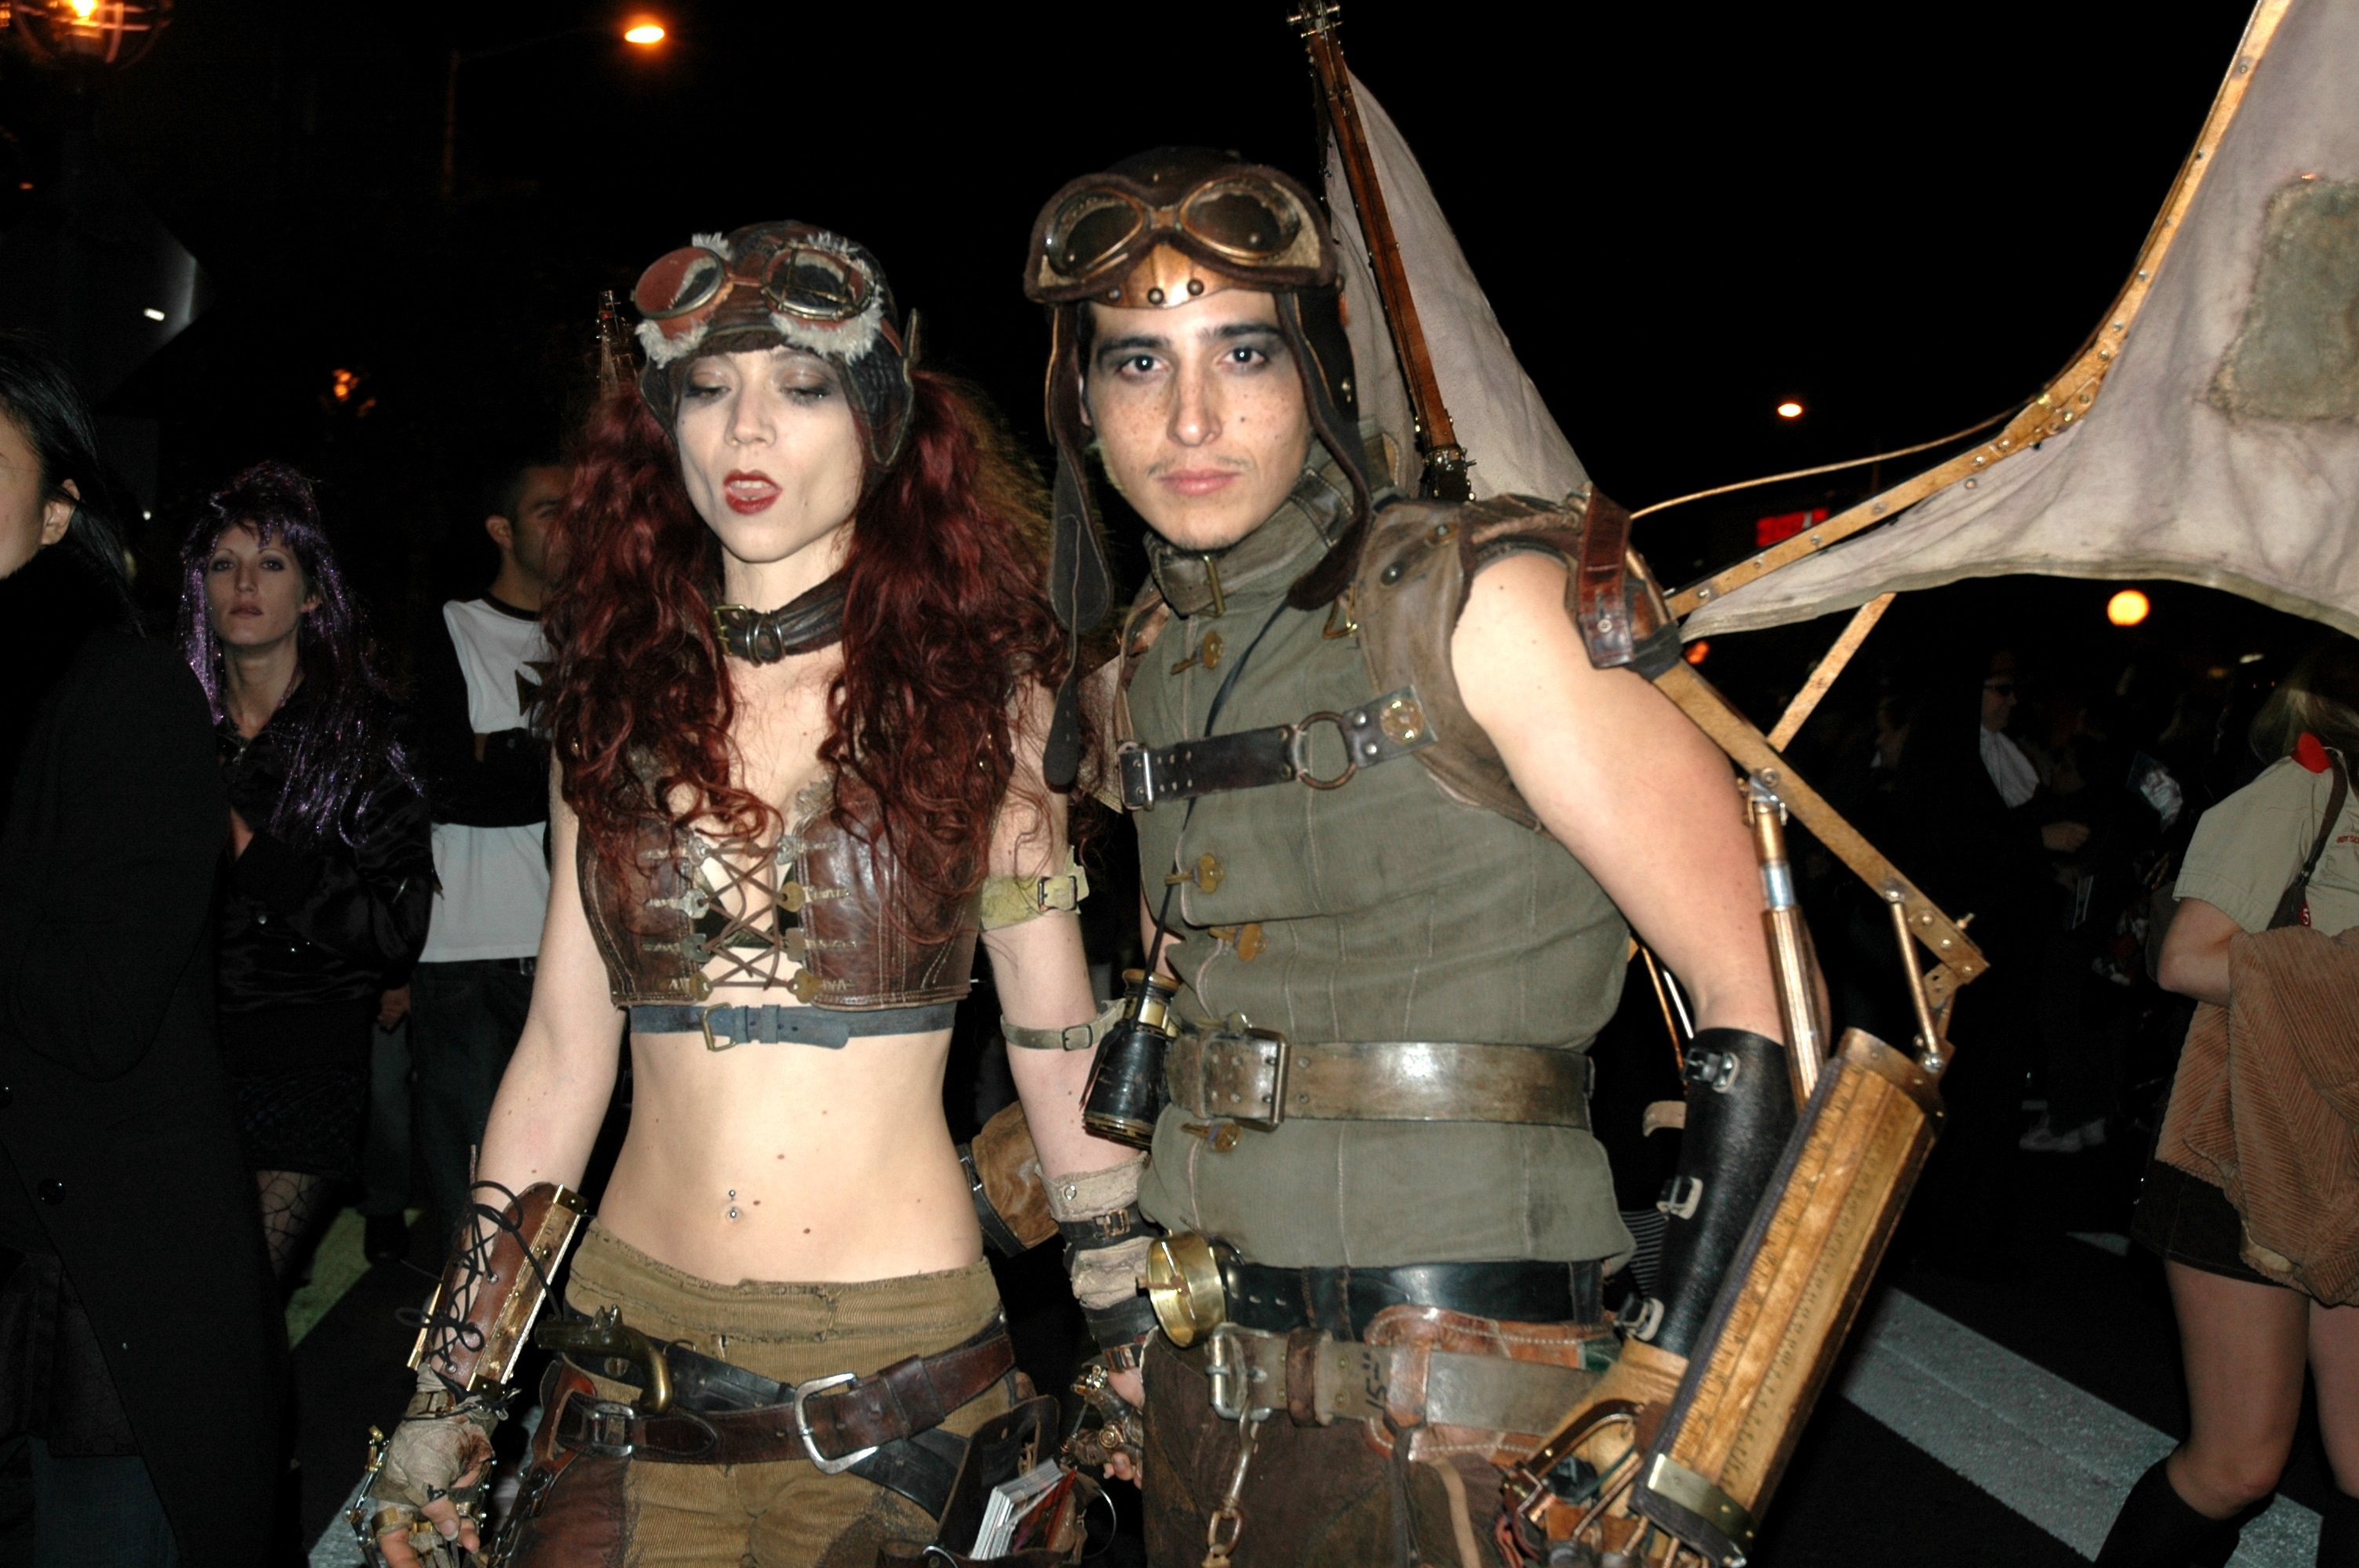 file:steampunk - 2004 west hollywood halloween carnival